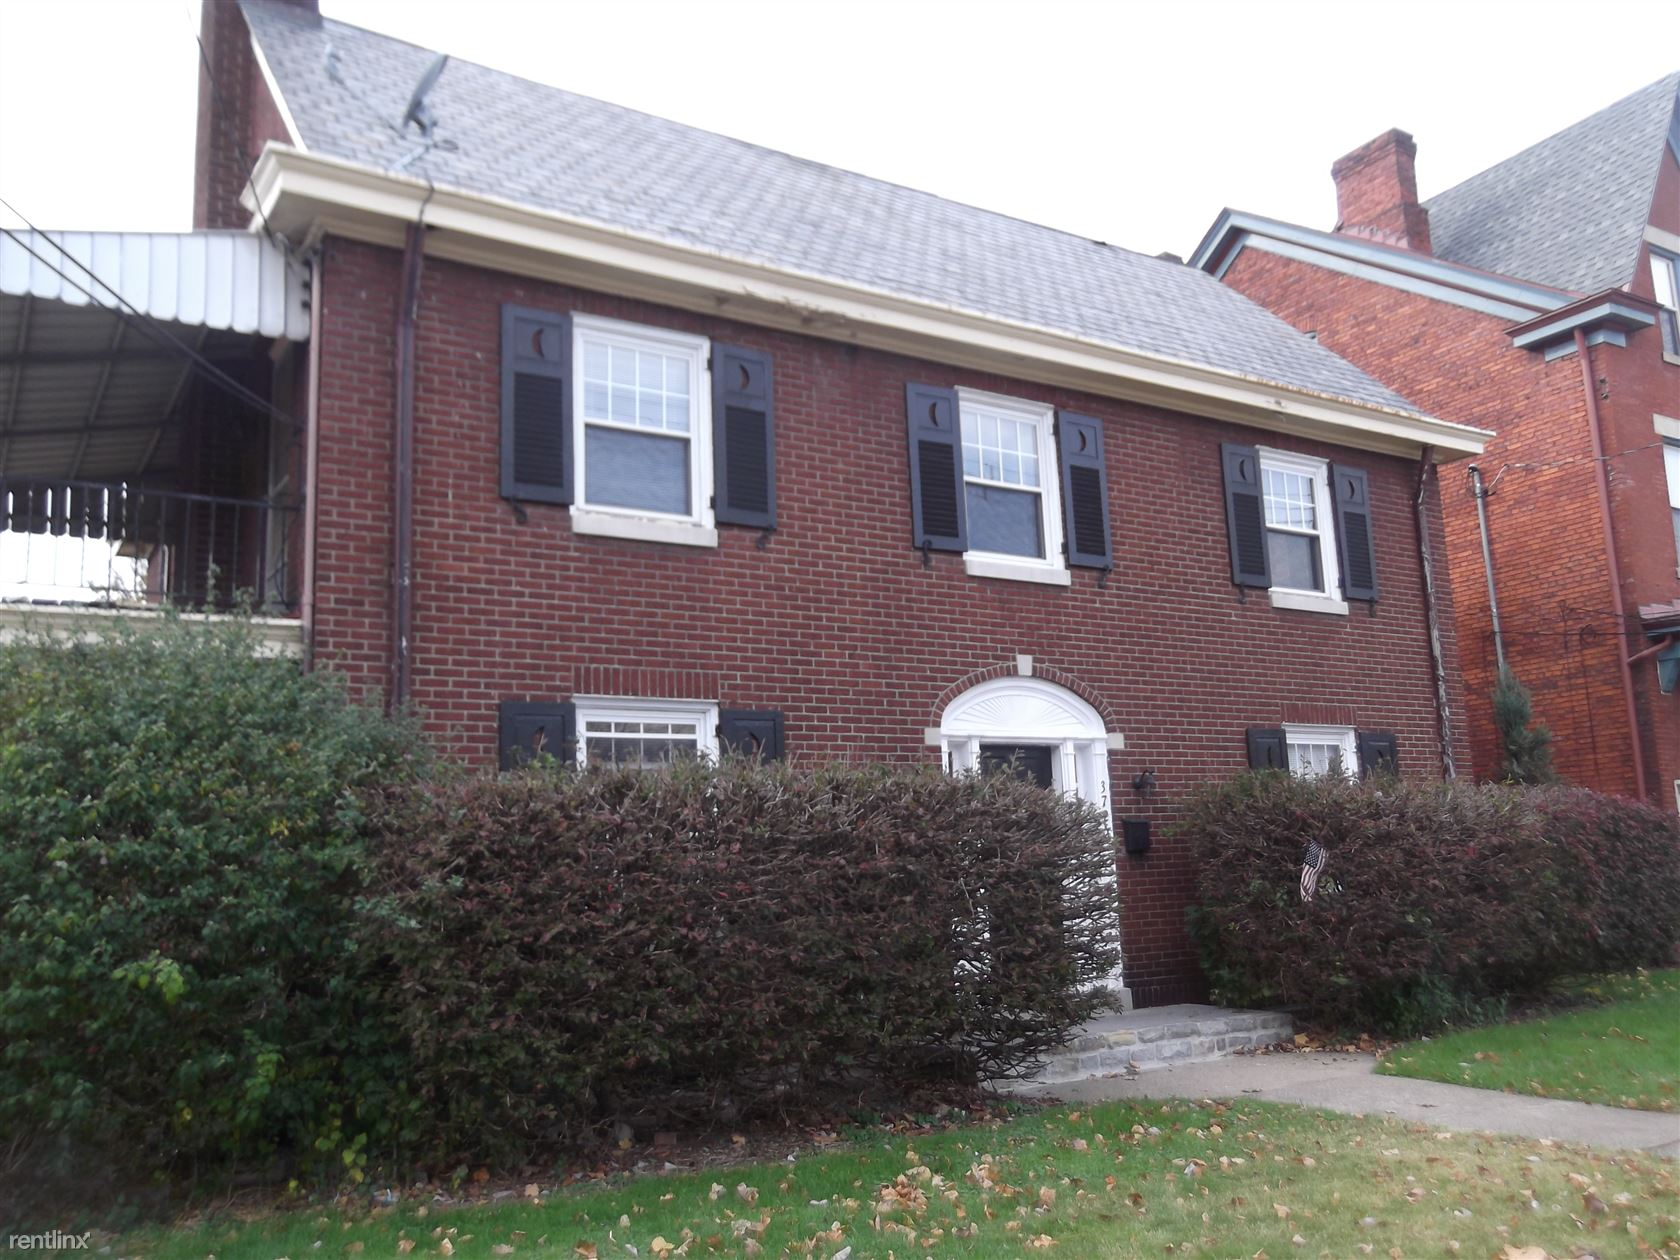 pennsylvania houses for rent in pennsylvania homes for rent apartments